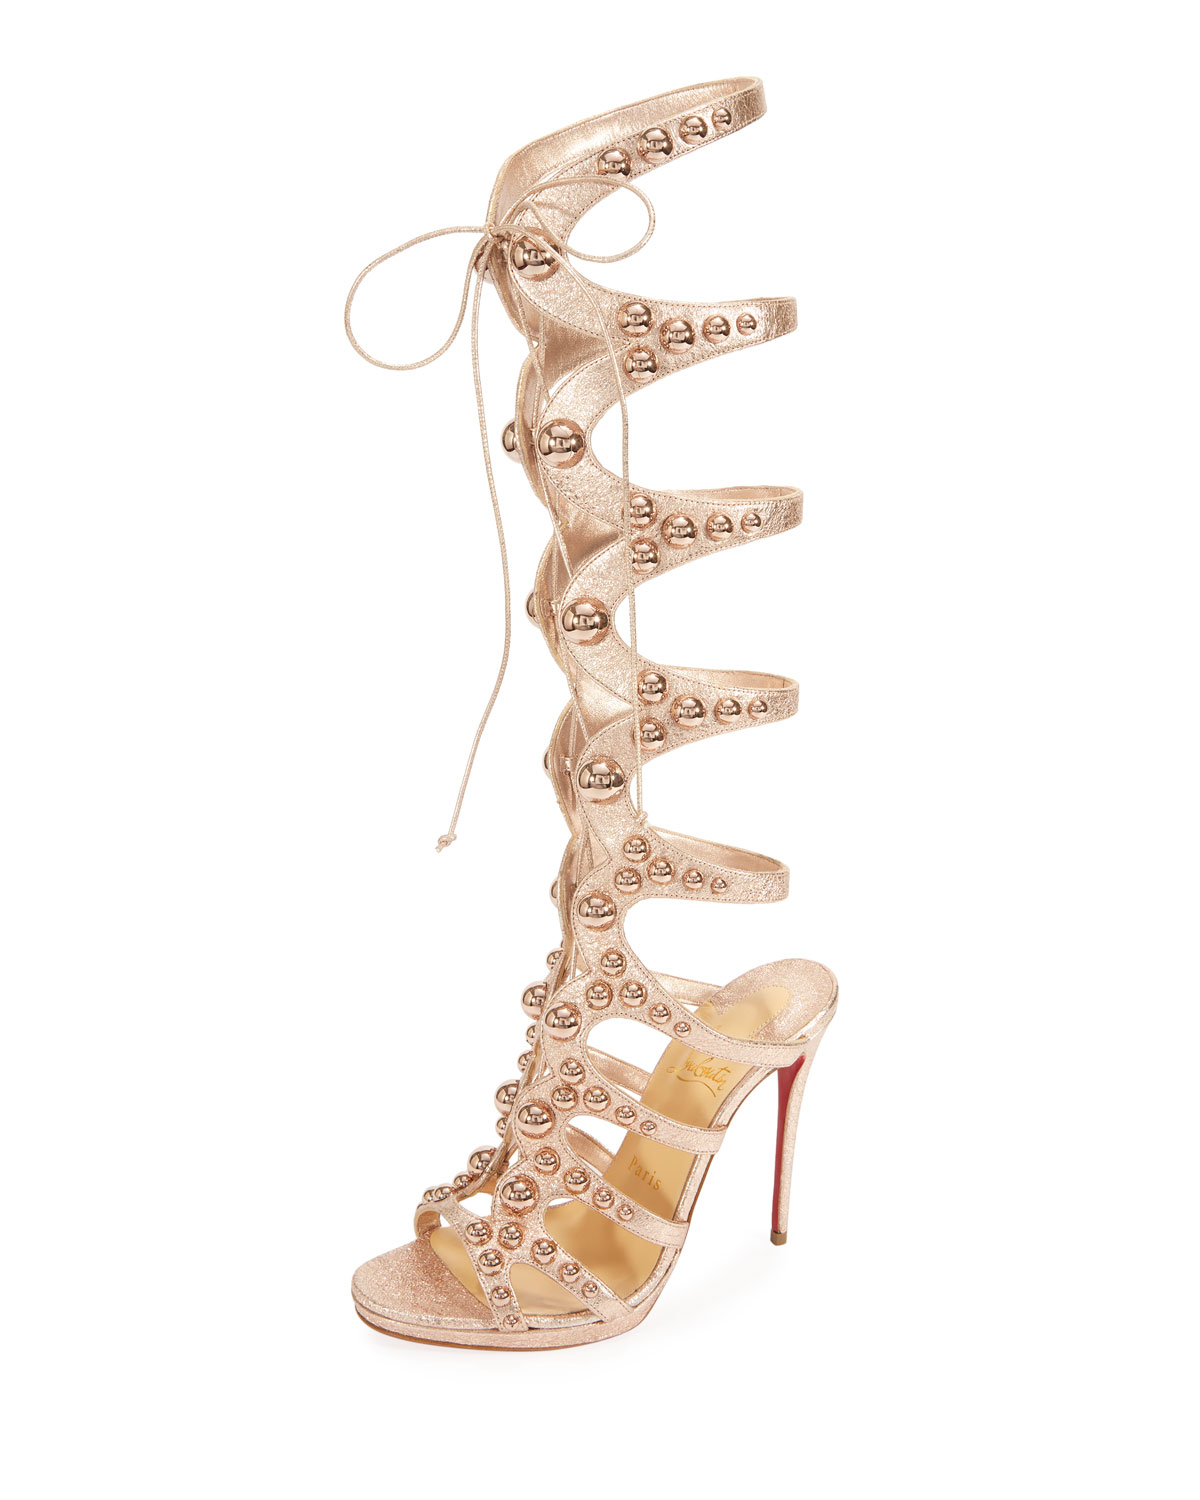 Amazoutiful 120mm Leather Gladiator Red Sole Sandal